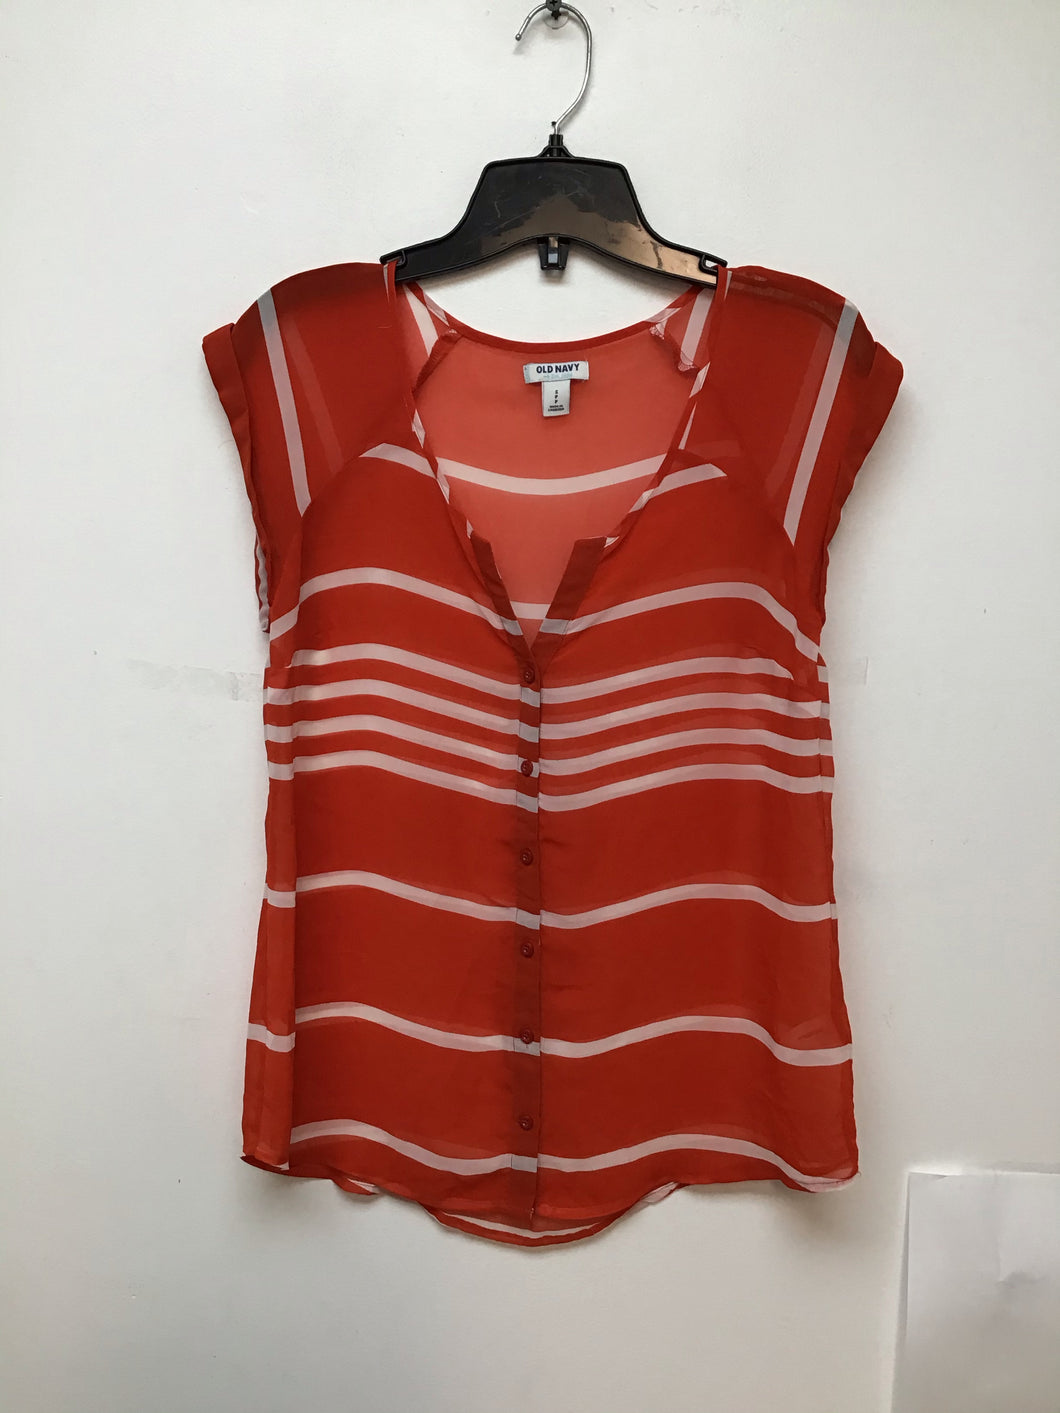 Old Navy orange with white stripes top size small